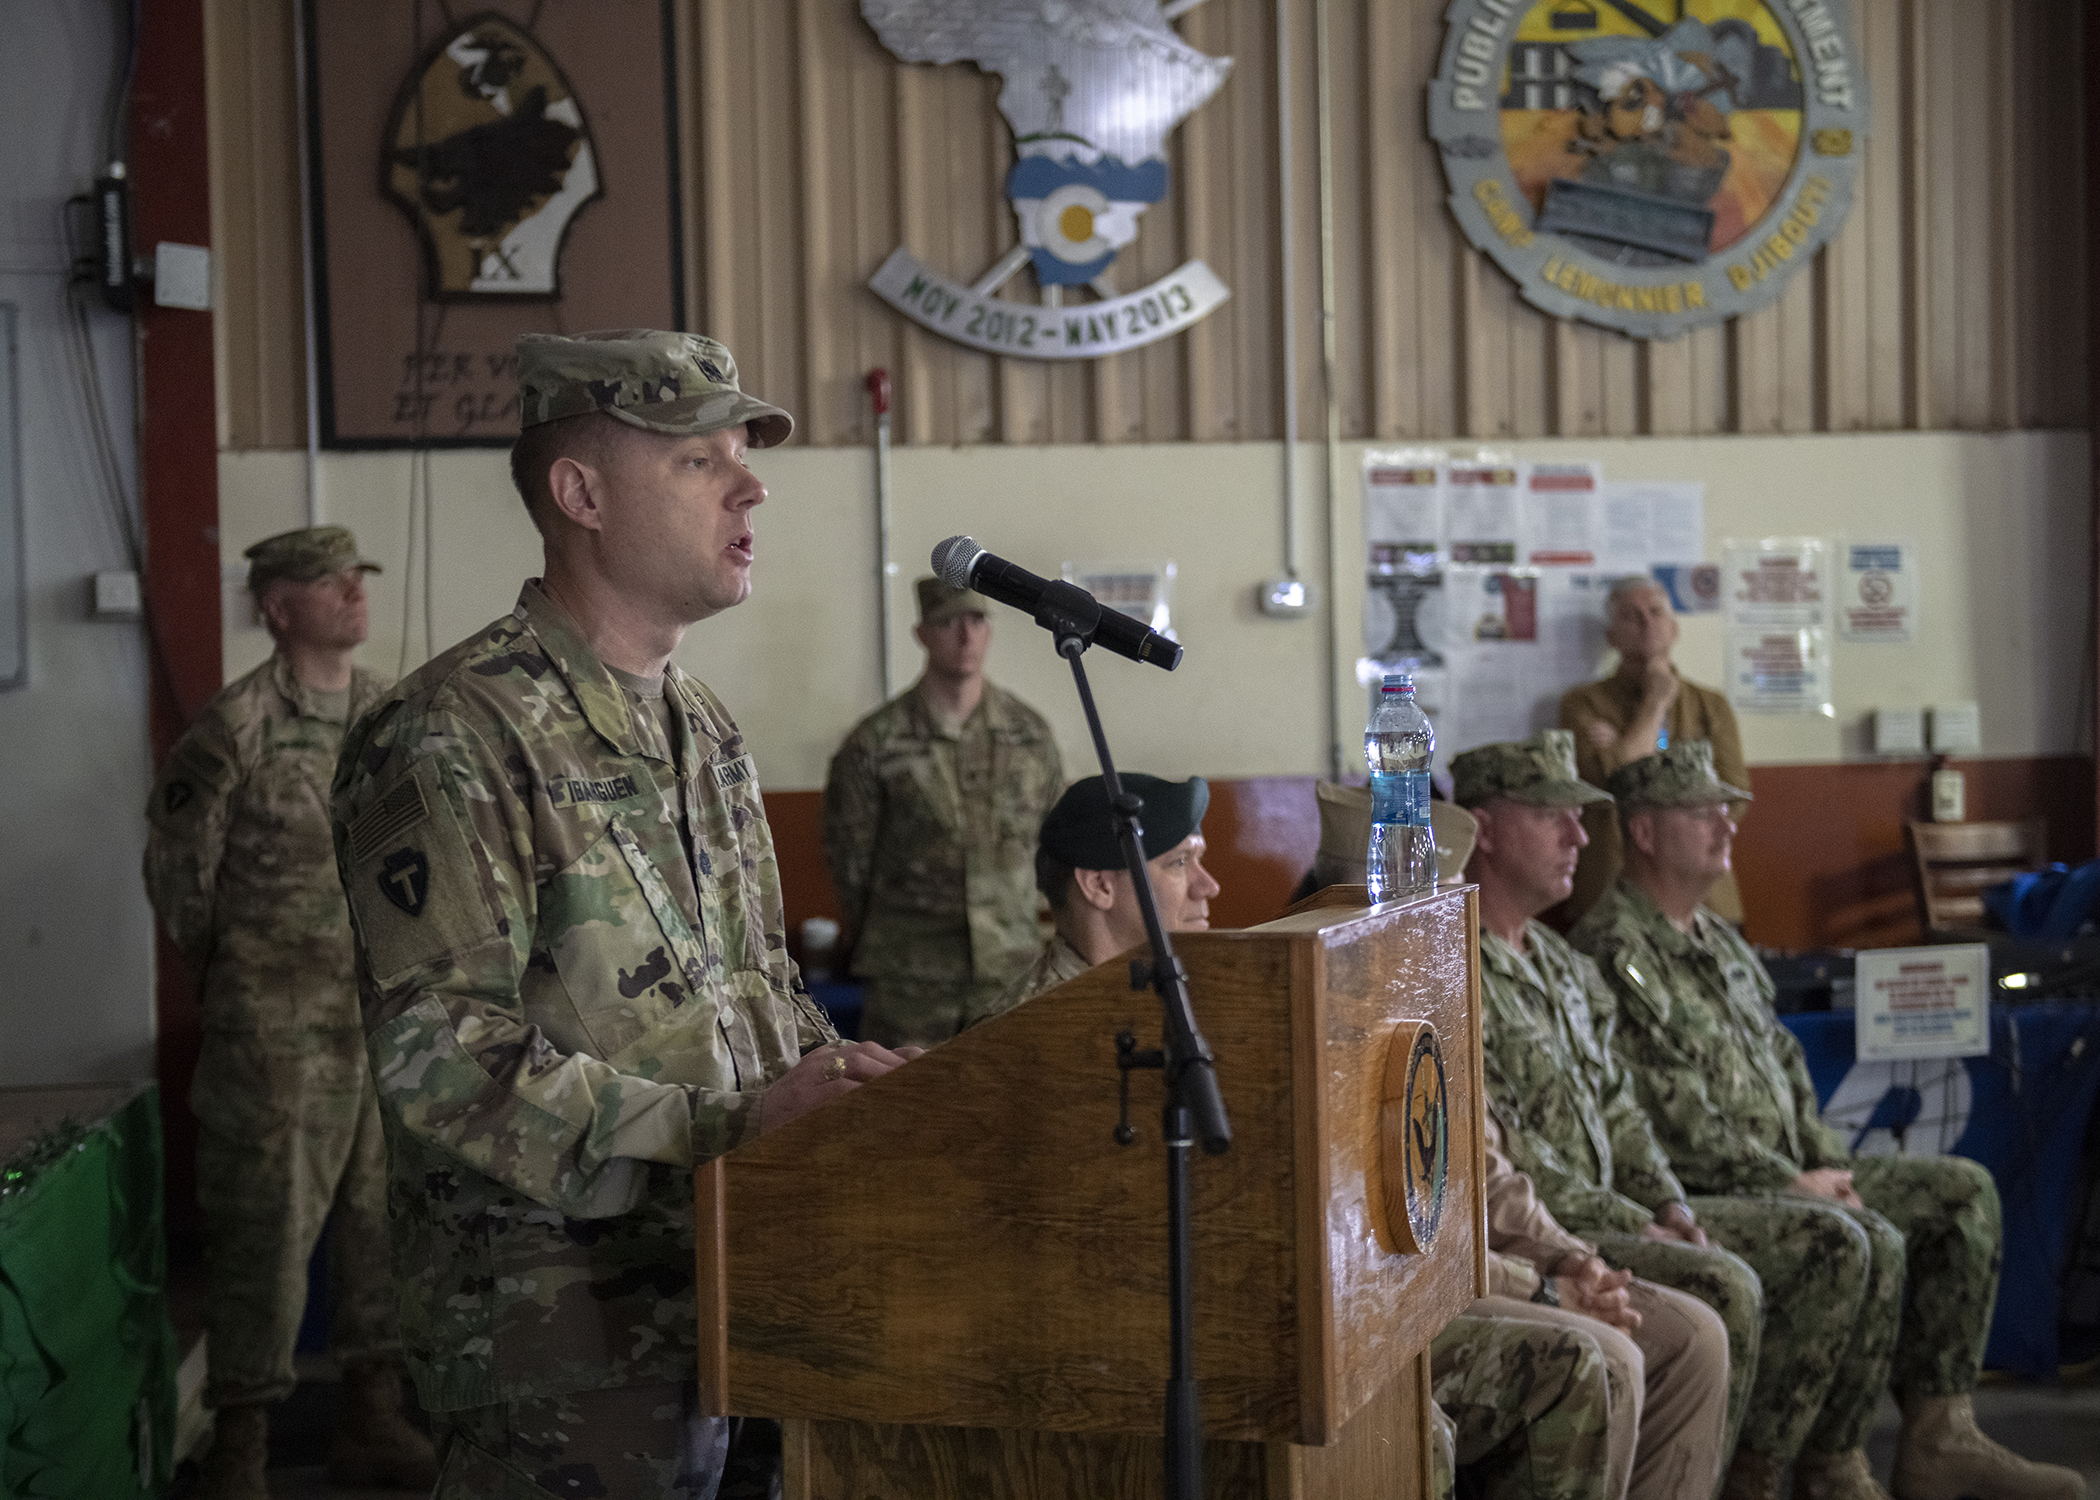 U.S. Army Lt. Col. Sean Ibarguen, commander, 1st Battalion, 141st Infantry Regiment, Task Force Alamo, Texas National Guard, gives a speech while transferring his unit's mission at Combined Joint Task Force-Horn of Africa (CJTF-HOA) to 2nd Battalion, 113th Infantry Regiment, Task Force Warrior, New Jersey National Guard, during a transfer of authority ceremony at Camp Lemonnier, Djibouti, March 15, 2019. Task Force Warrior assumed responsibility as the security forces battalion for CJTF-HOA and will also contribute to international efforts to enhance security and stability in East Africa. (U.S. Air Force Photo by Tech. Sgt. Shawn Nickel)